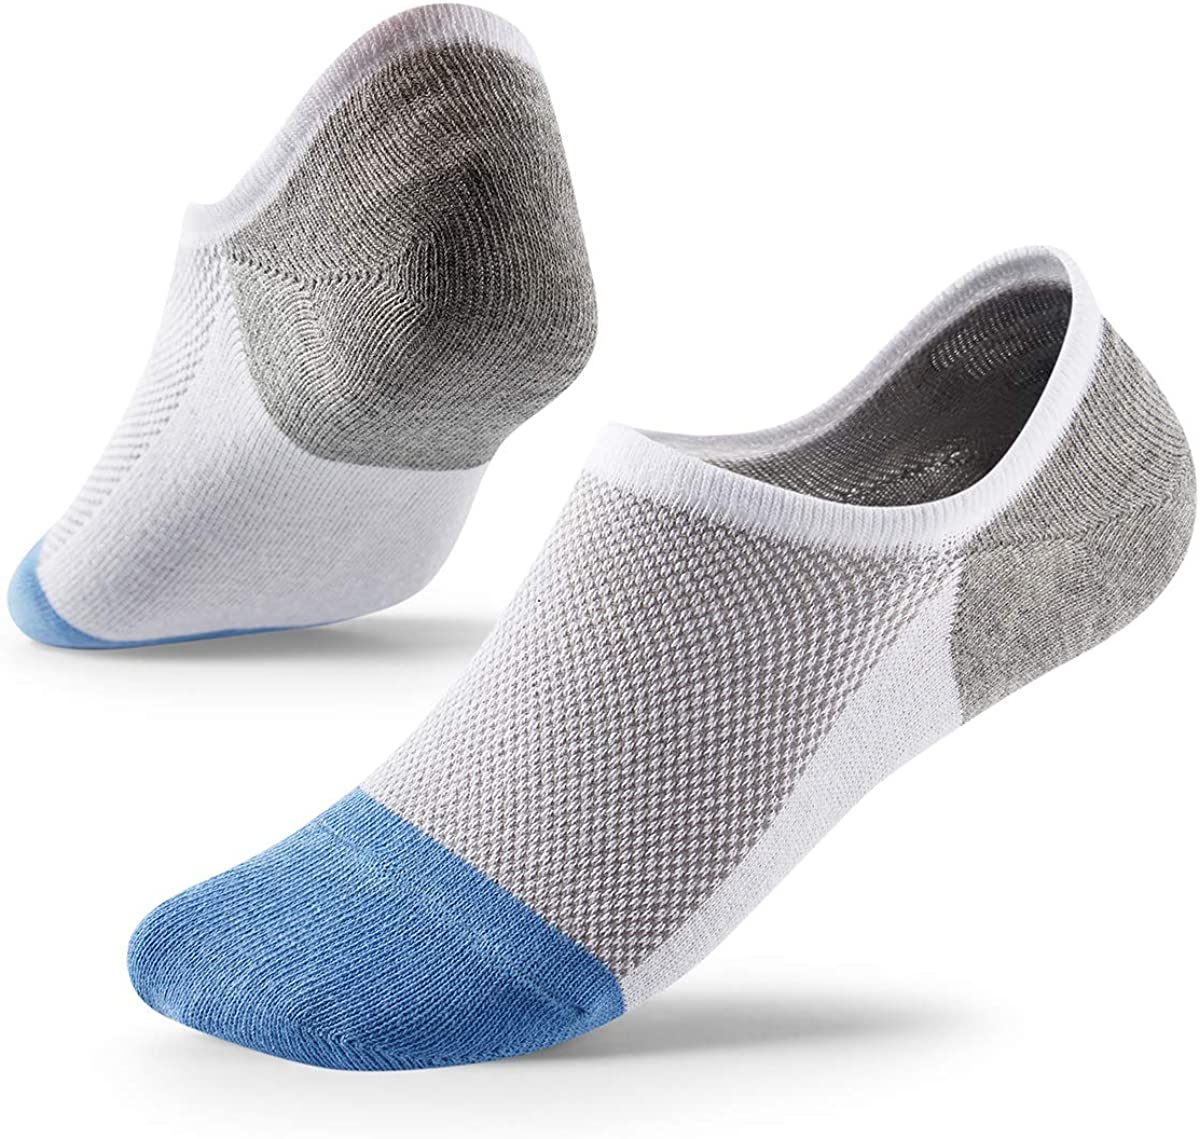 No Show Socks with Non-Slip Grip for Men&Women- Invisible Socks with Breathable Cotton for Sneakers 5Pairs Size 7-12 Hicomlor